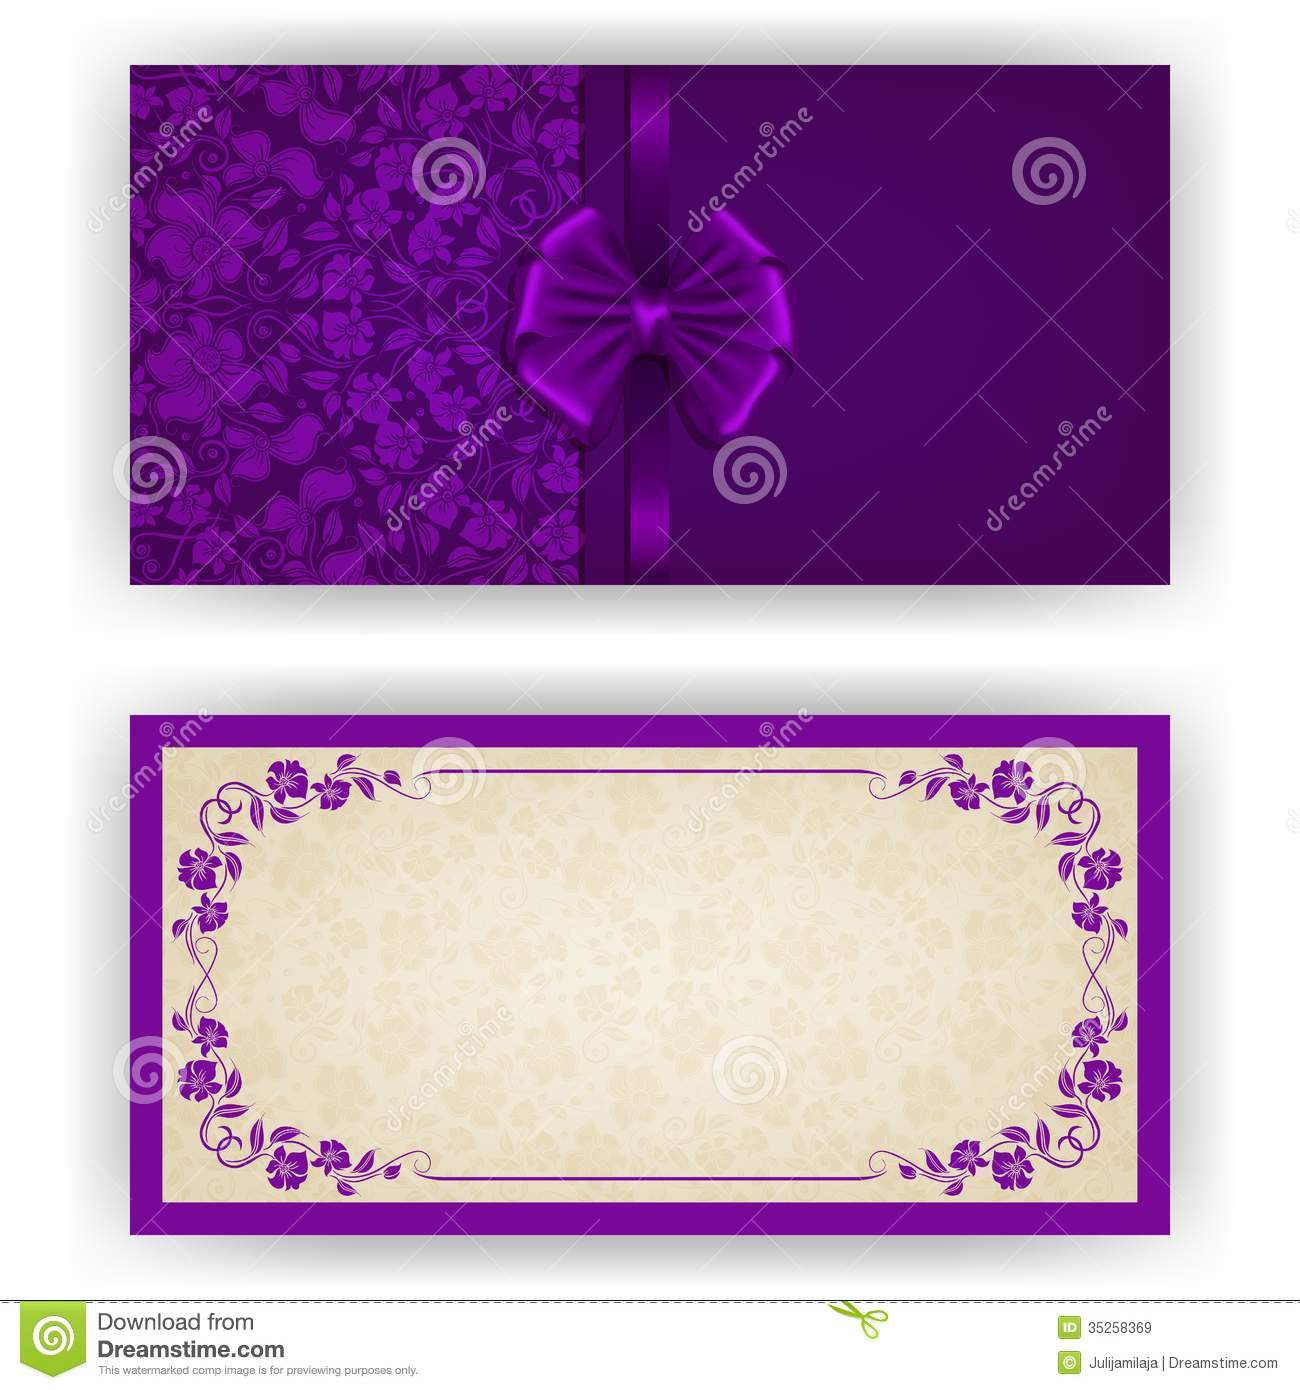 Elegant Vector Template For Luxury Invitation, Royalty ...